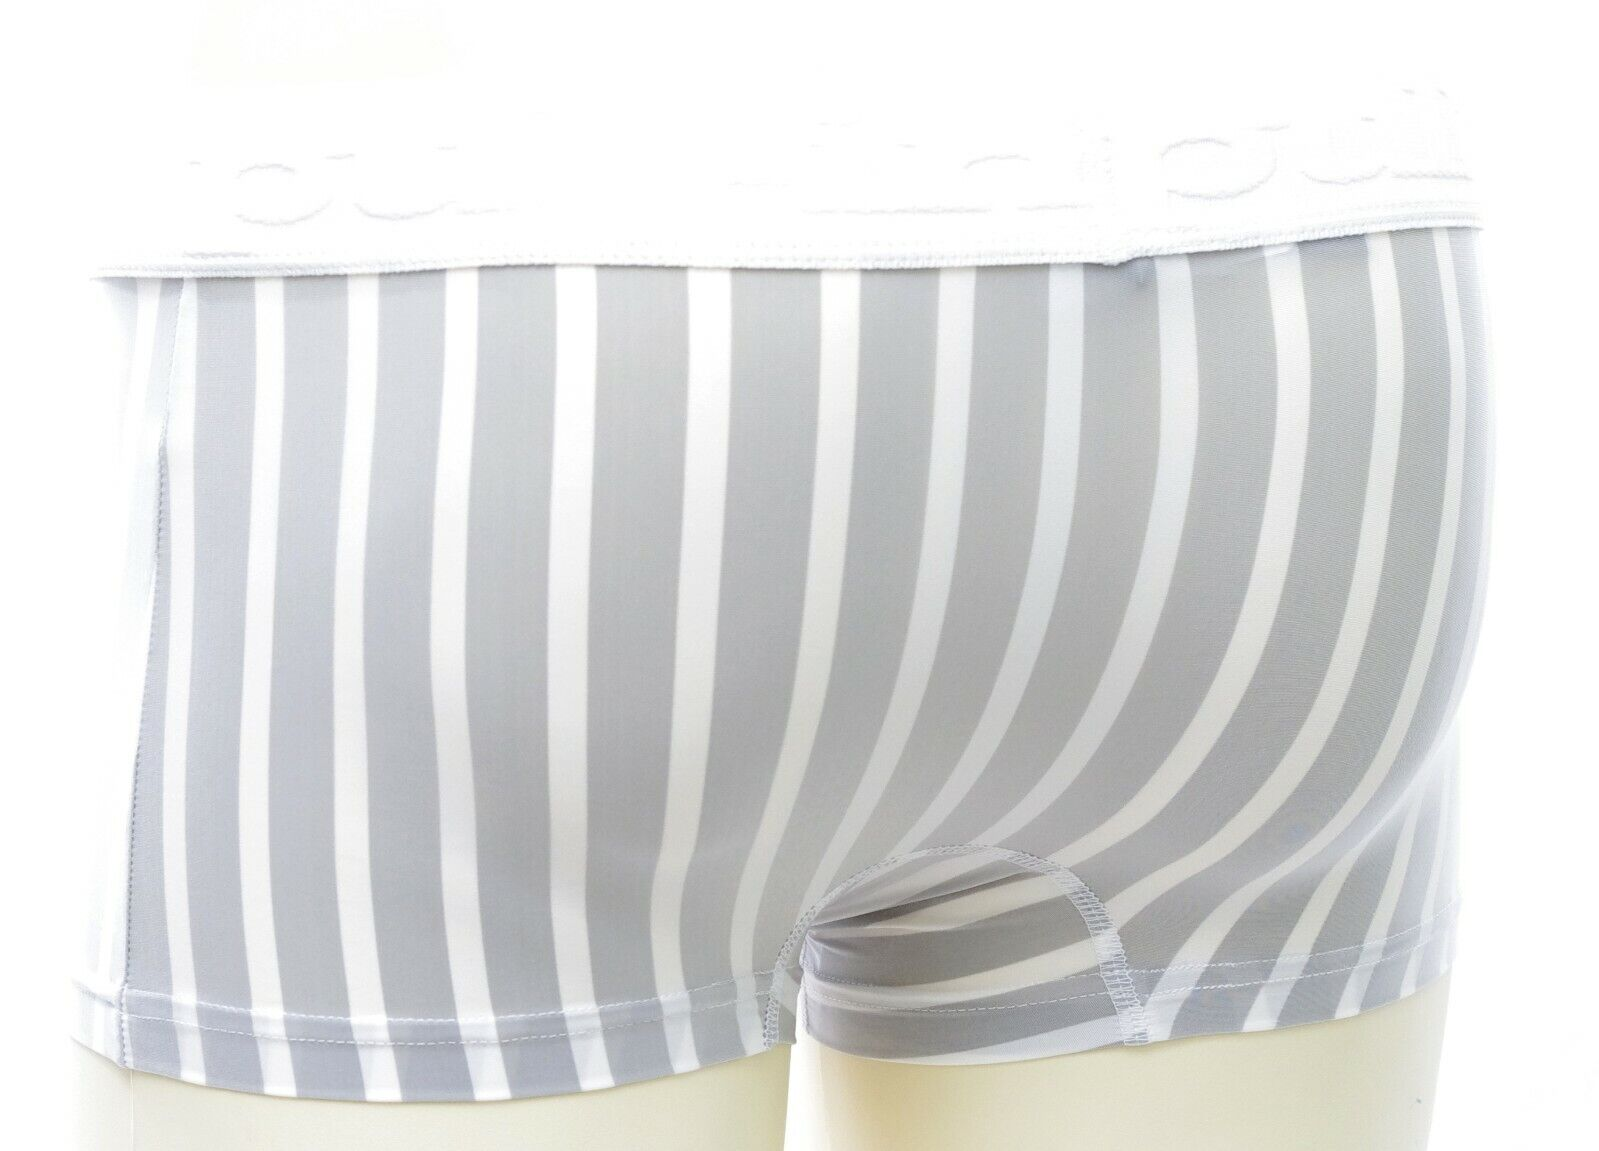 PULL IN Boxer Homme blanc shorty TREASURE caleçon underwear PULLIN taille S